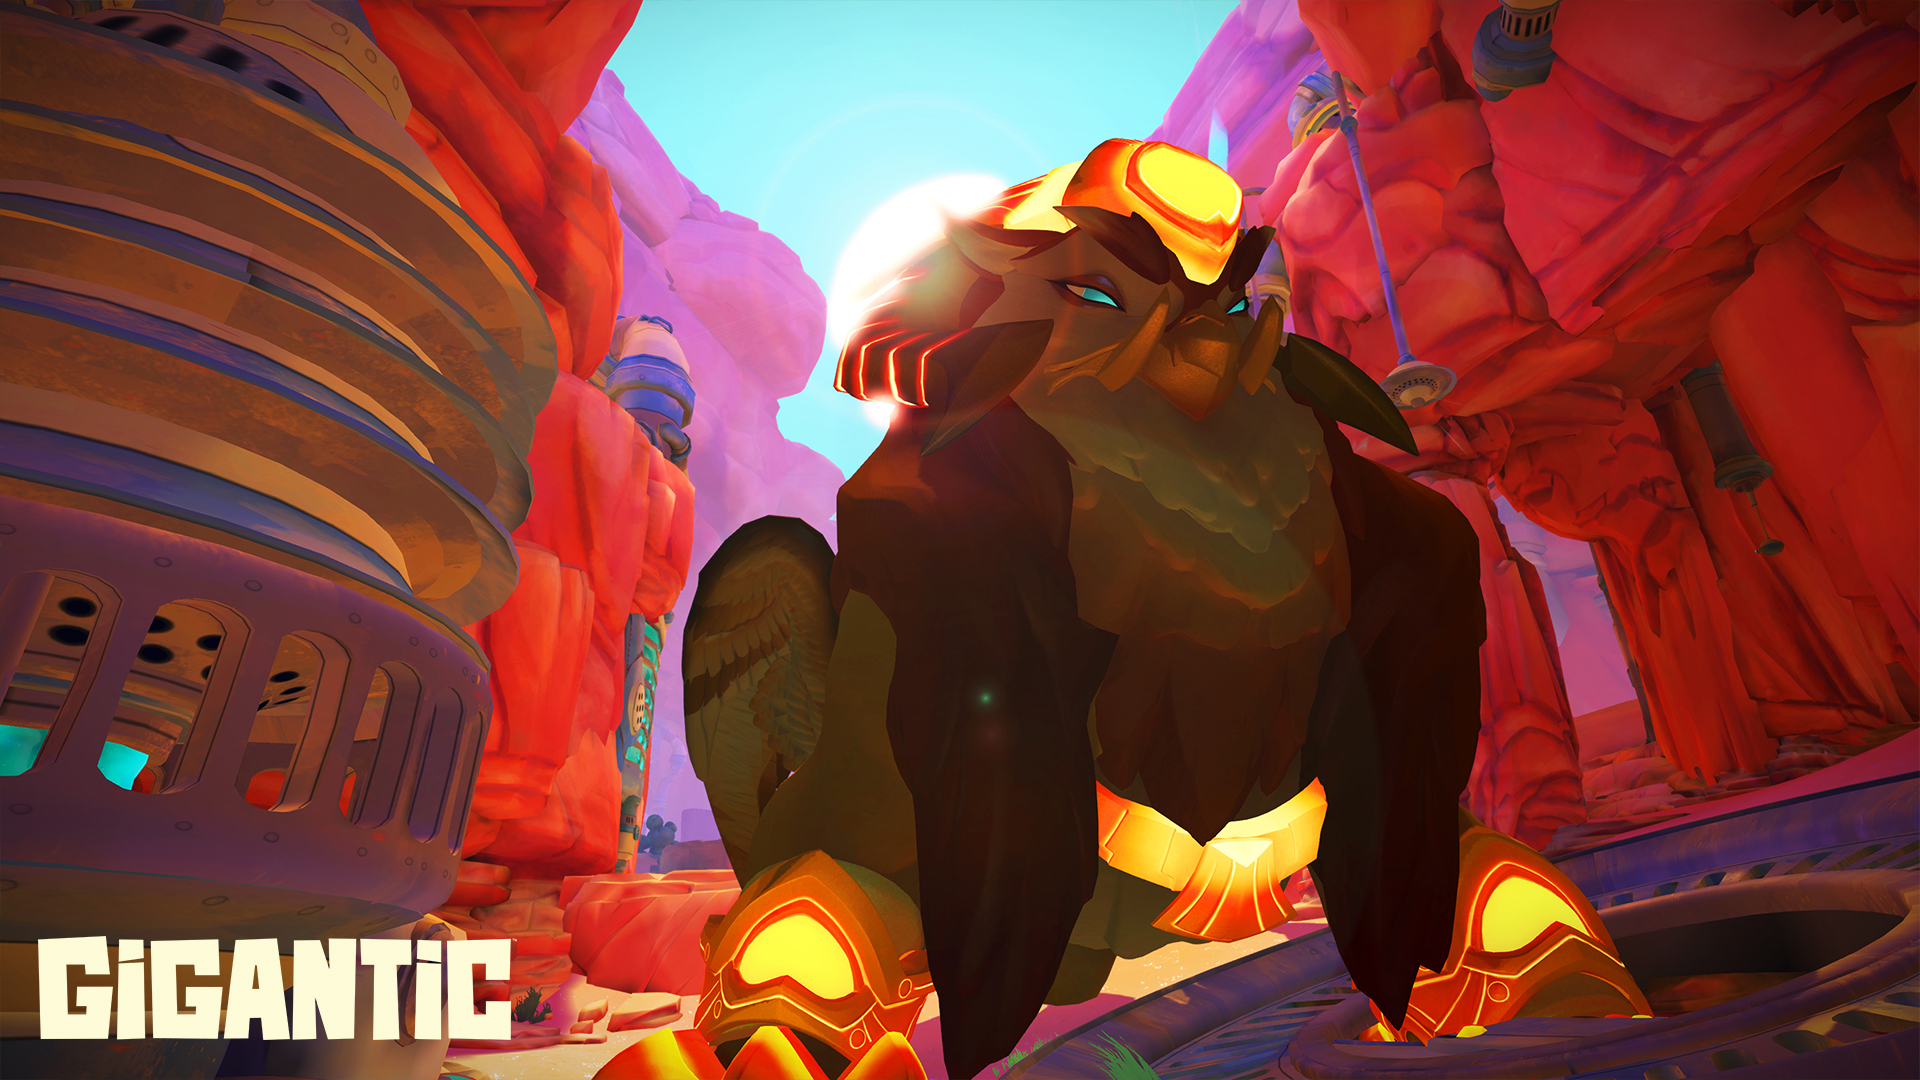 Gigantic open beta hits Xbox One Game Preview December 8th